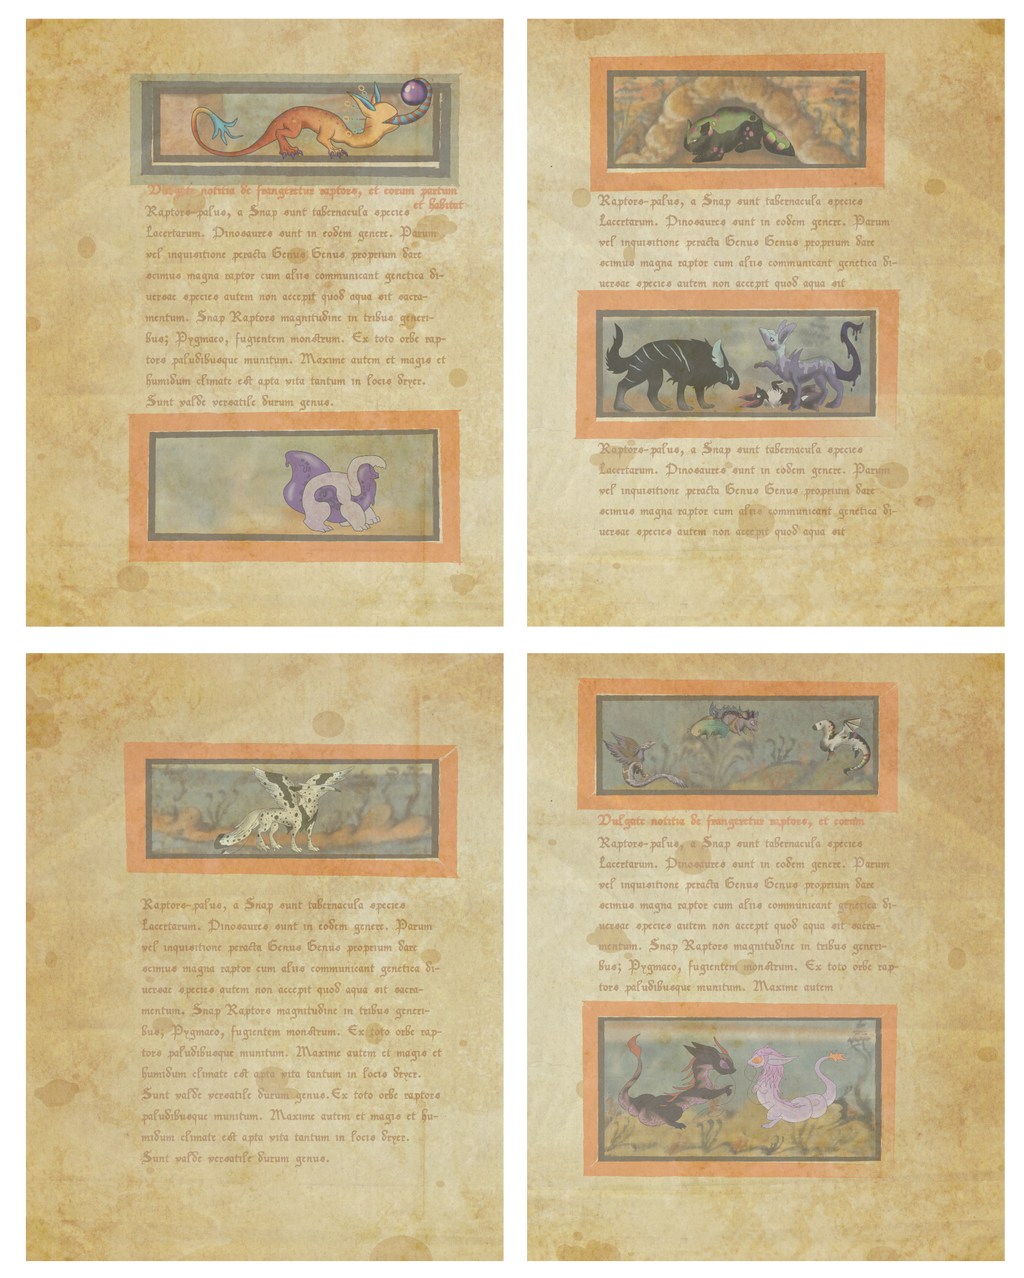 Graphic Design II Final - Medieval Bestiary